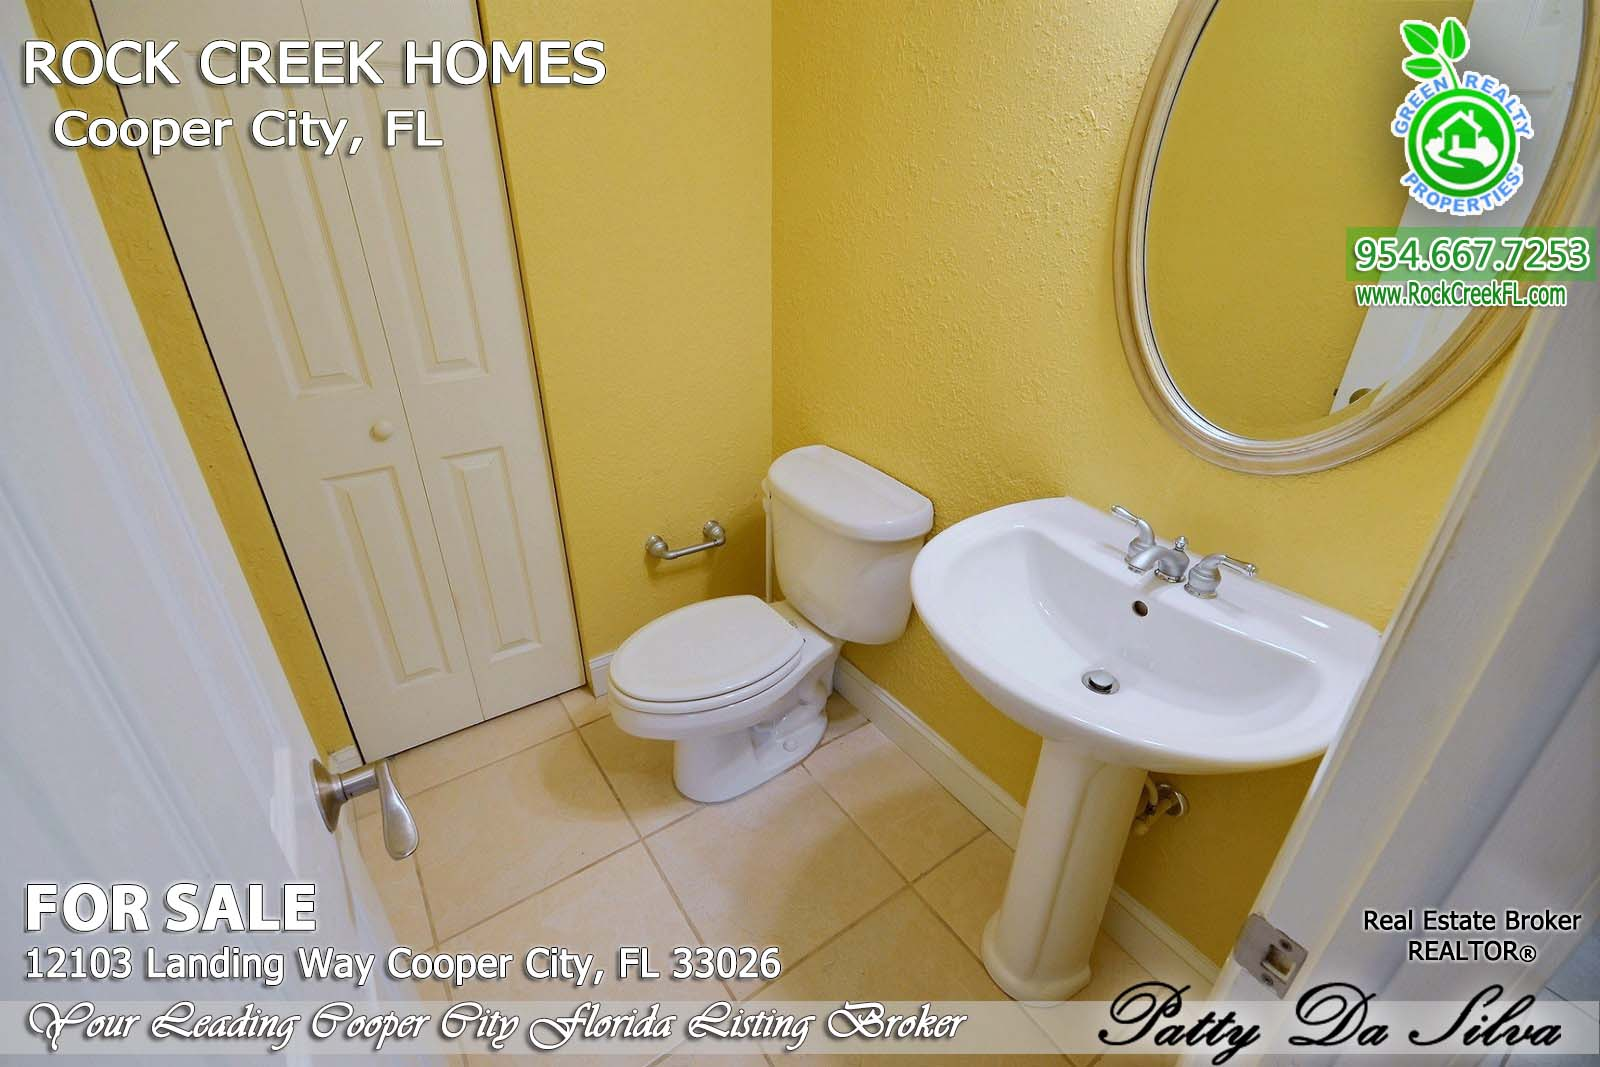 12103 Landing Way, Cooper City FL 33026 (23)